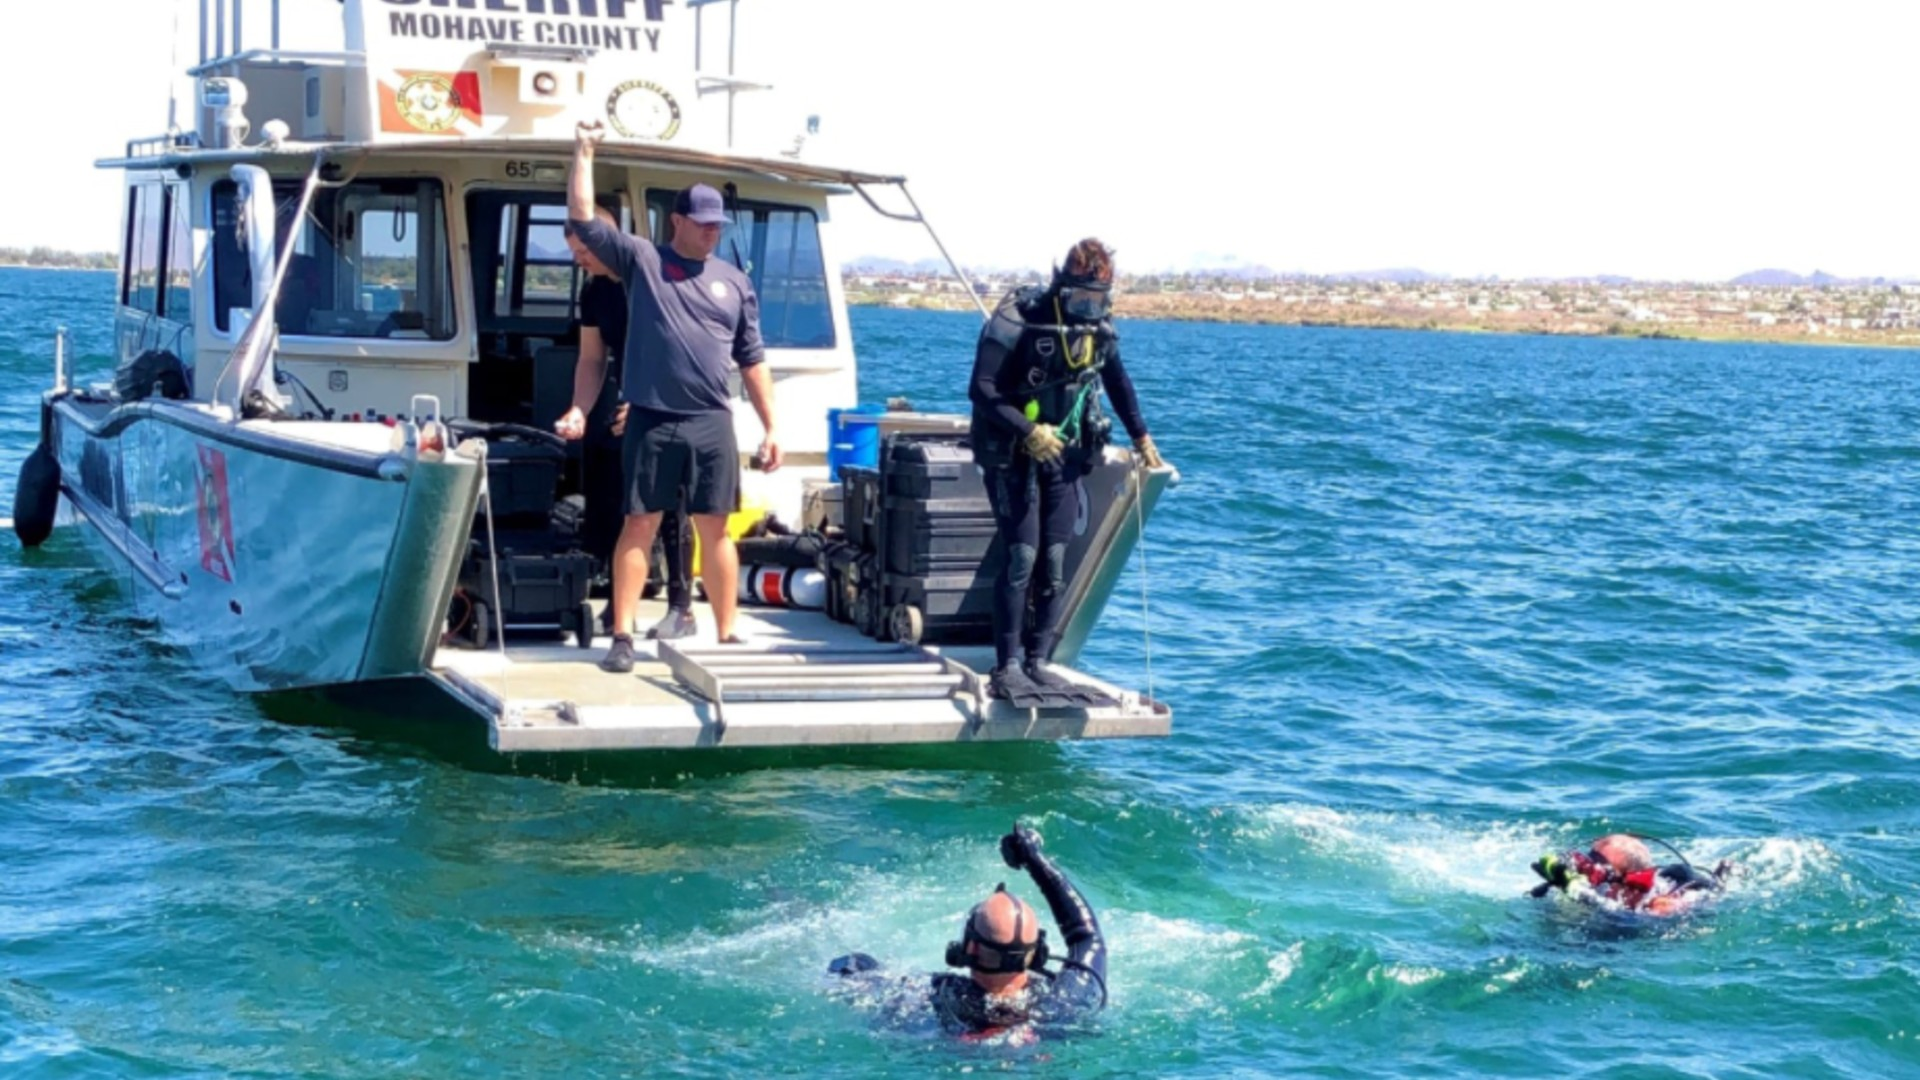 Divers attempt to recover the body of a 16-year-old boy who drowned in Lake Havasu. (Mohave County Sheriff's Office)